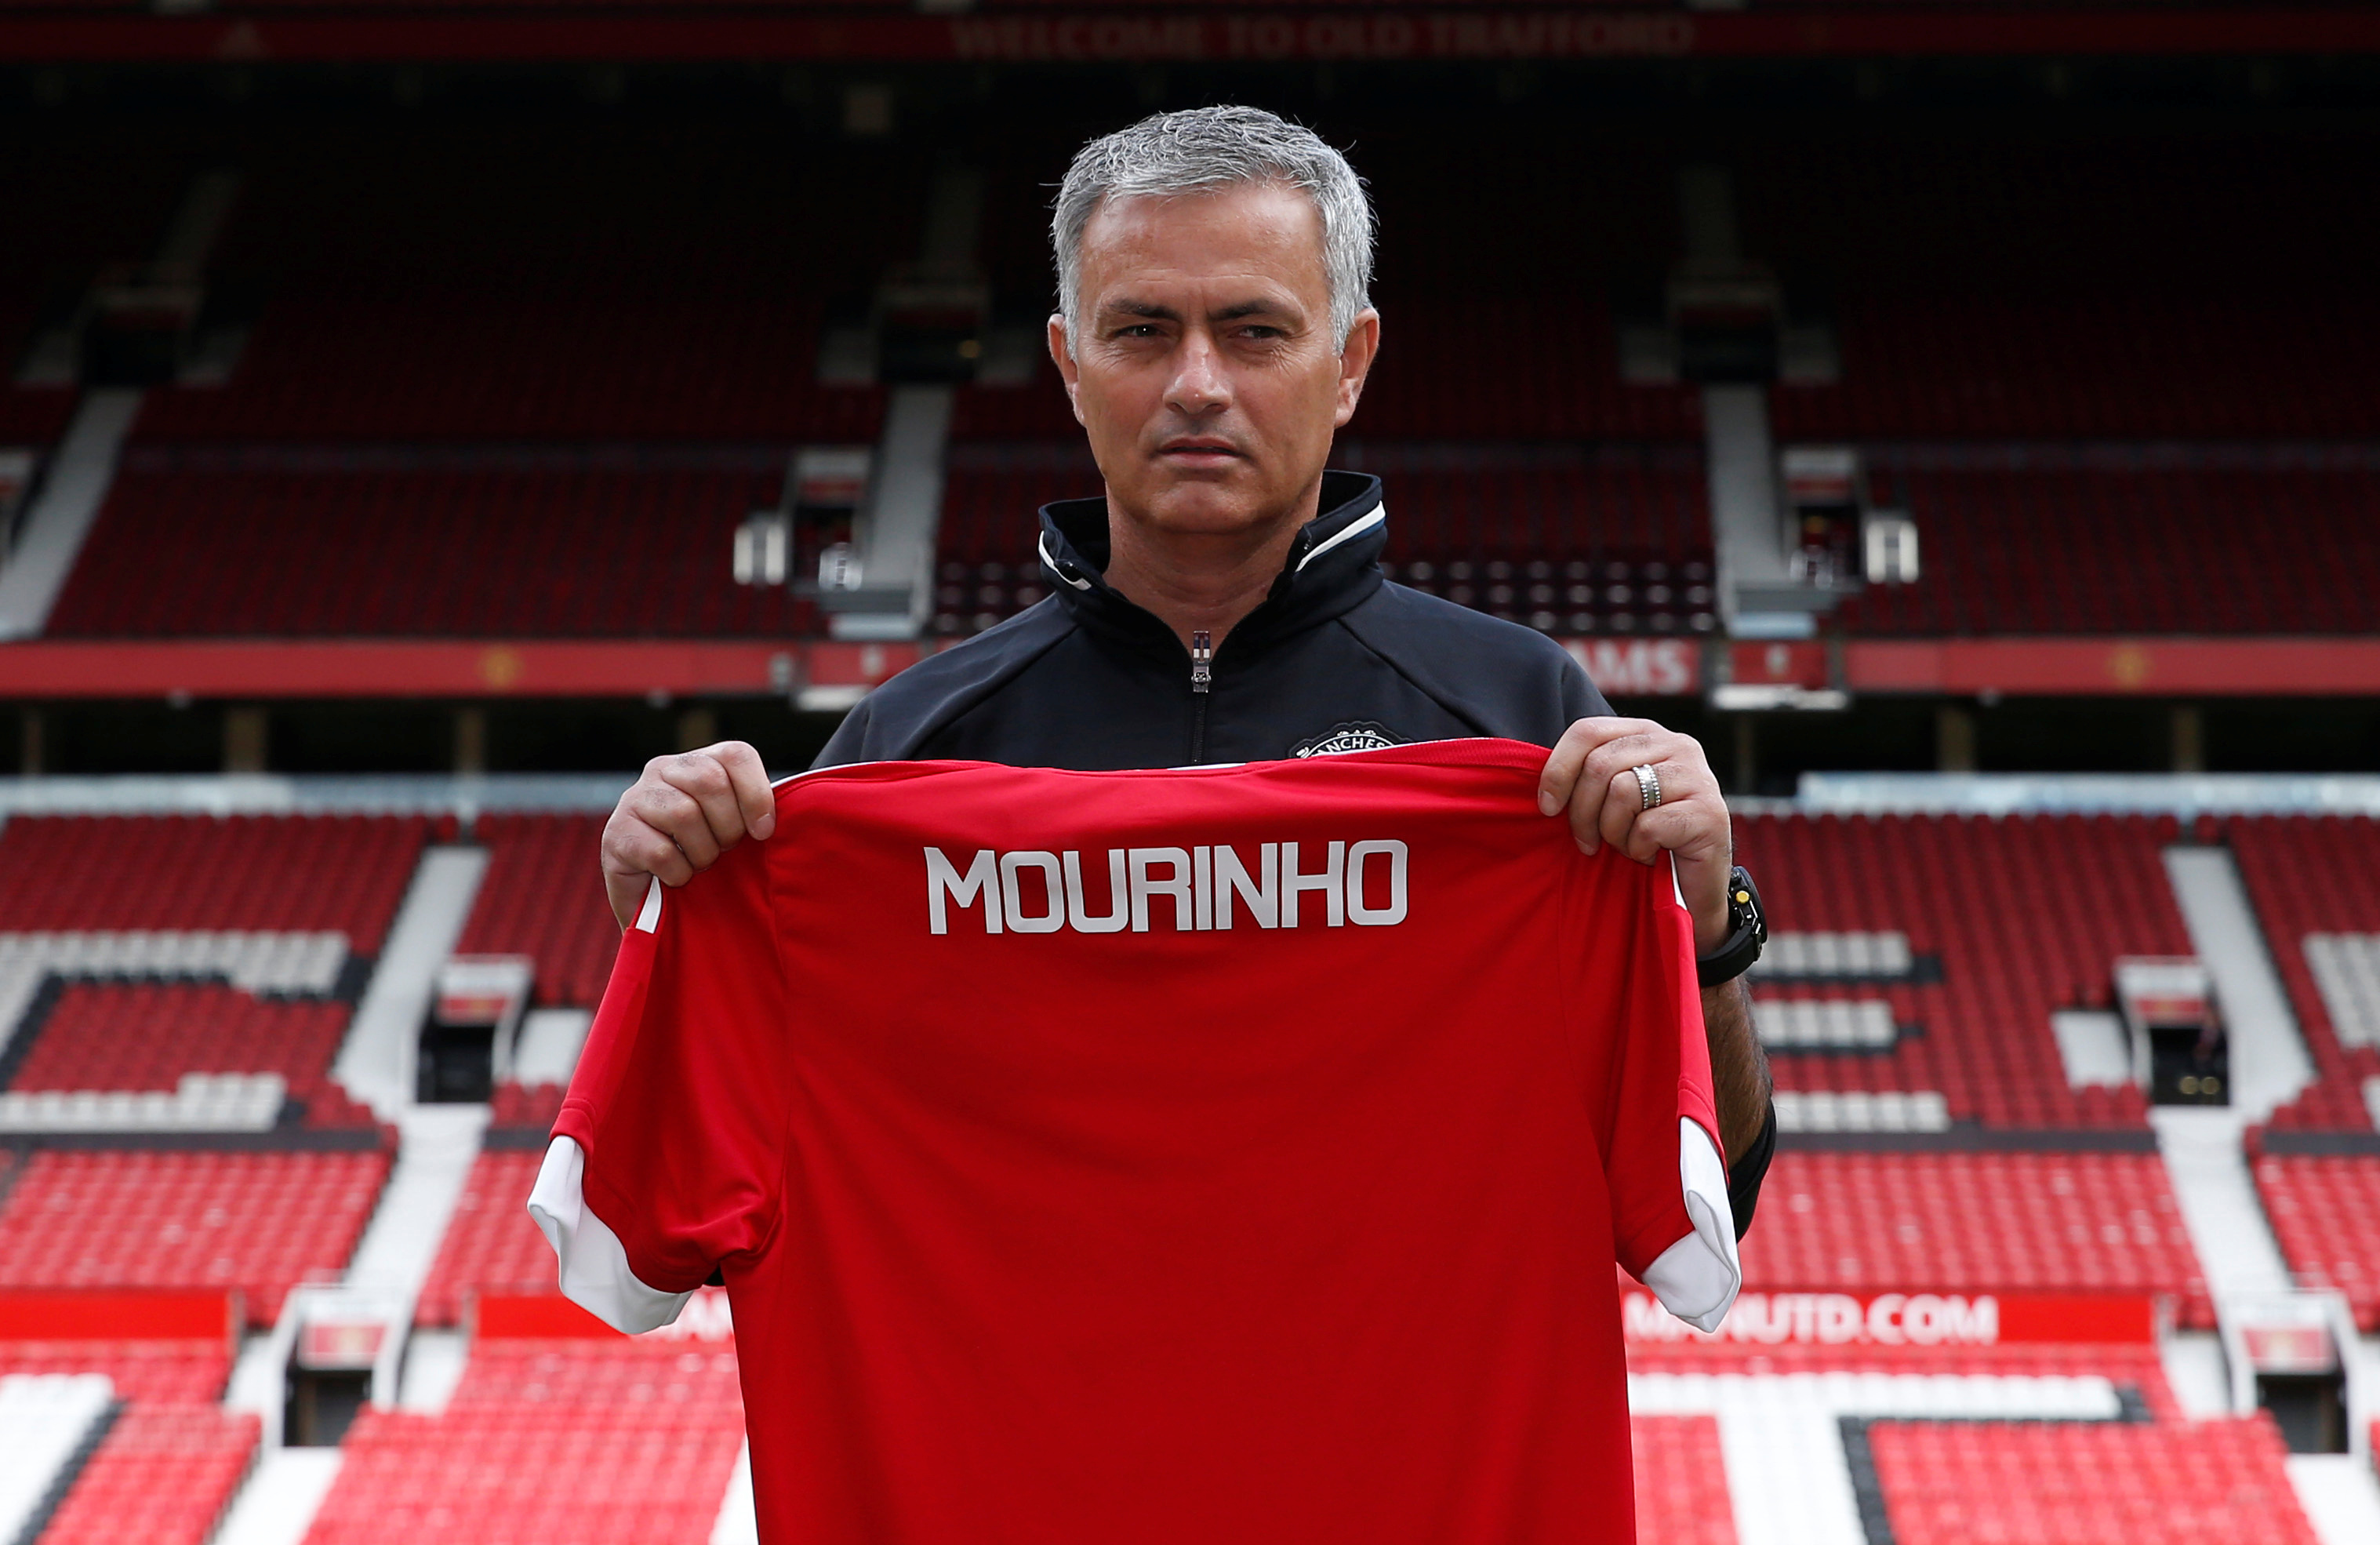 Football Reaction To Sacking Of Manchester United Manager Jose Mourinho The Star